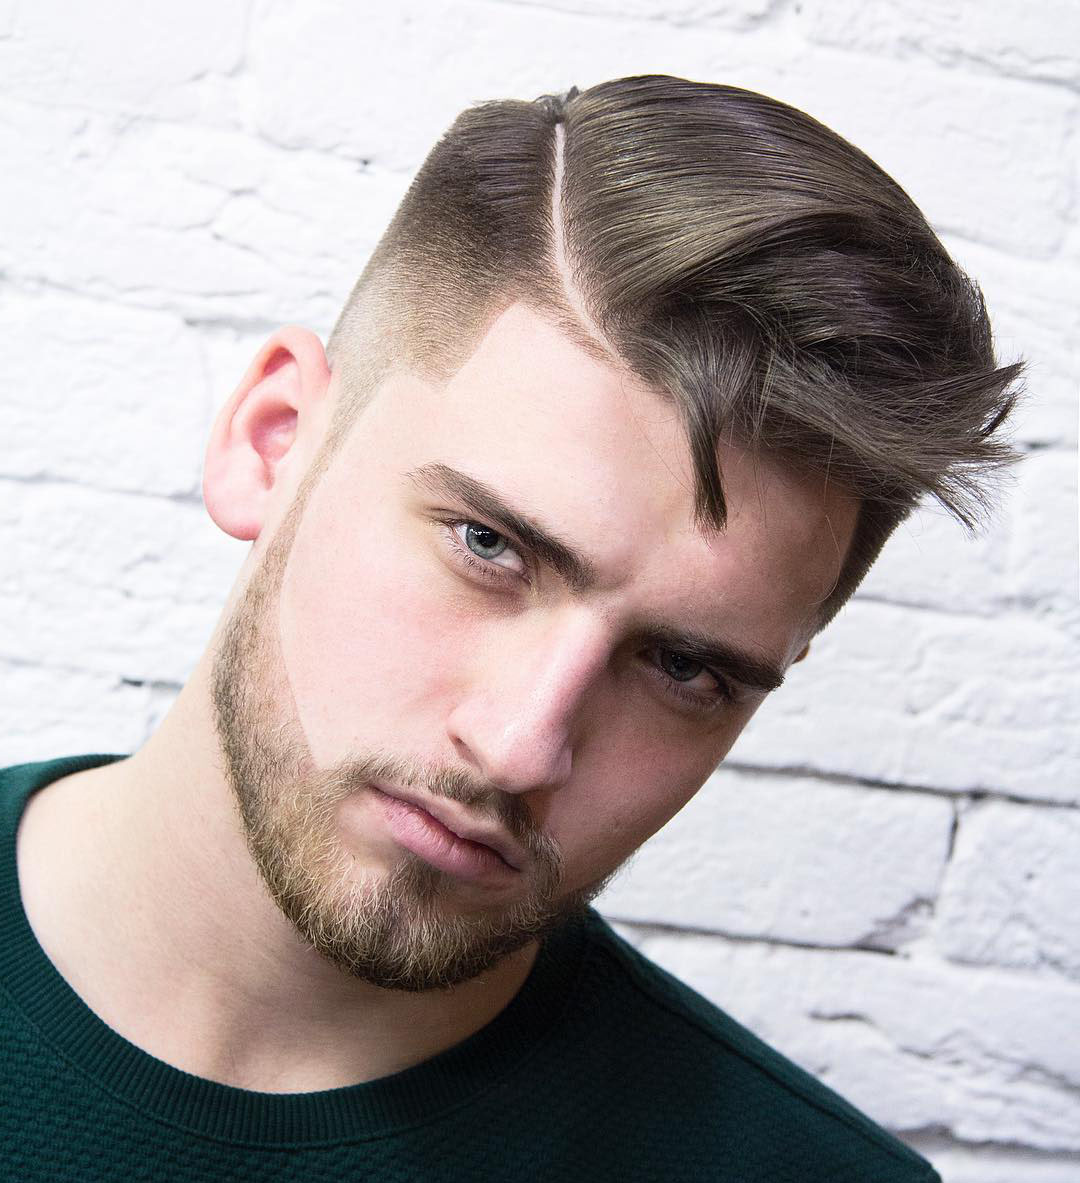 Cool Zig-Zag Hairstyle for Men